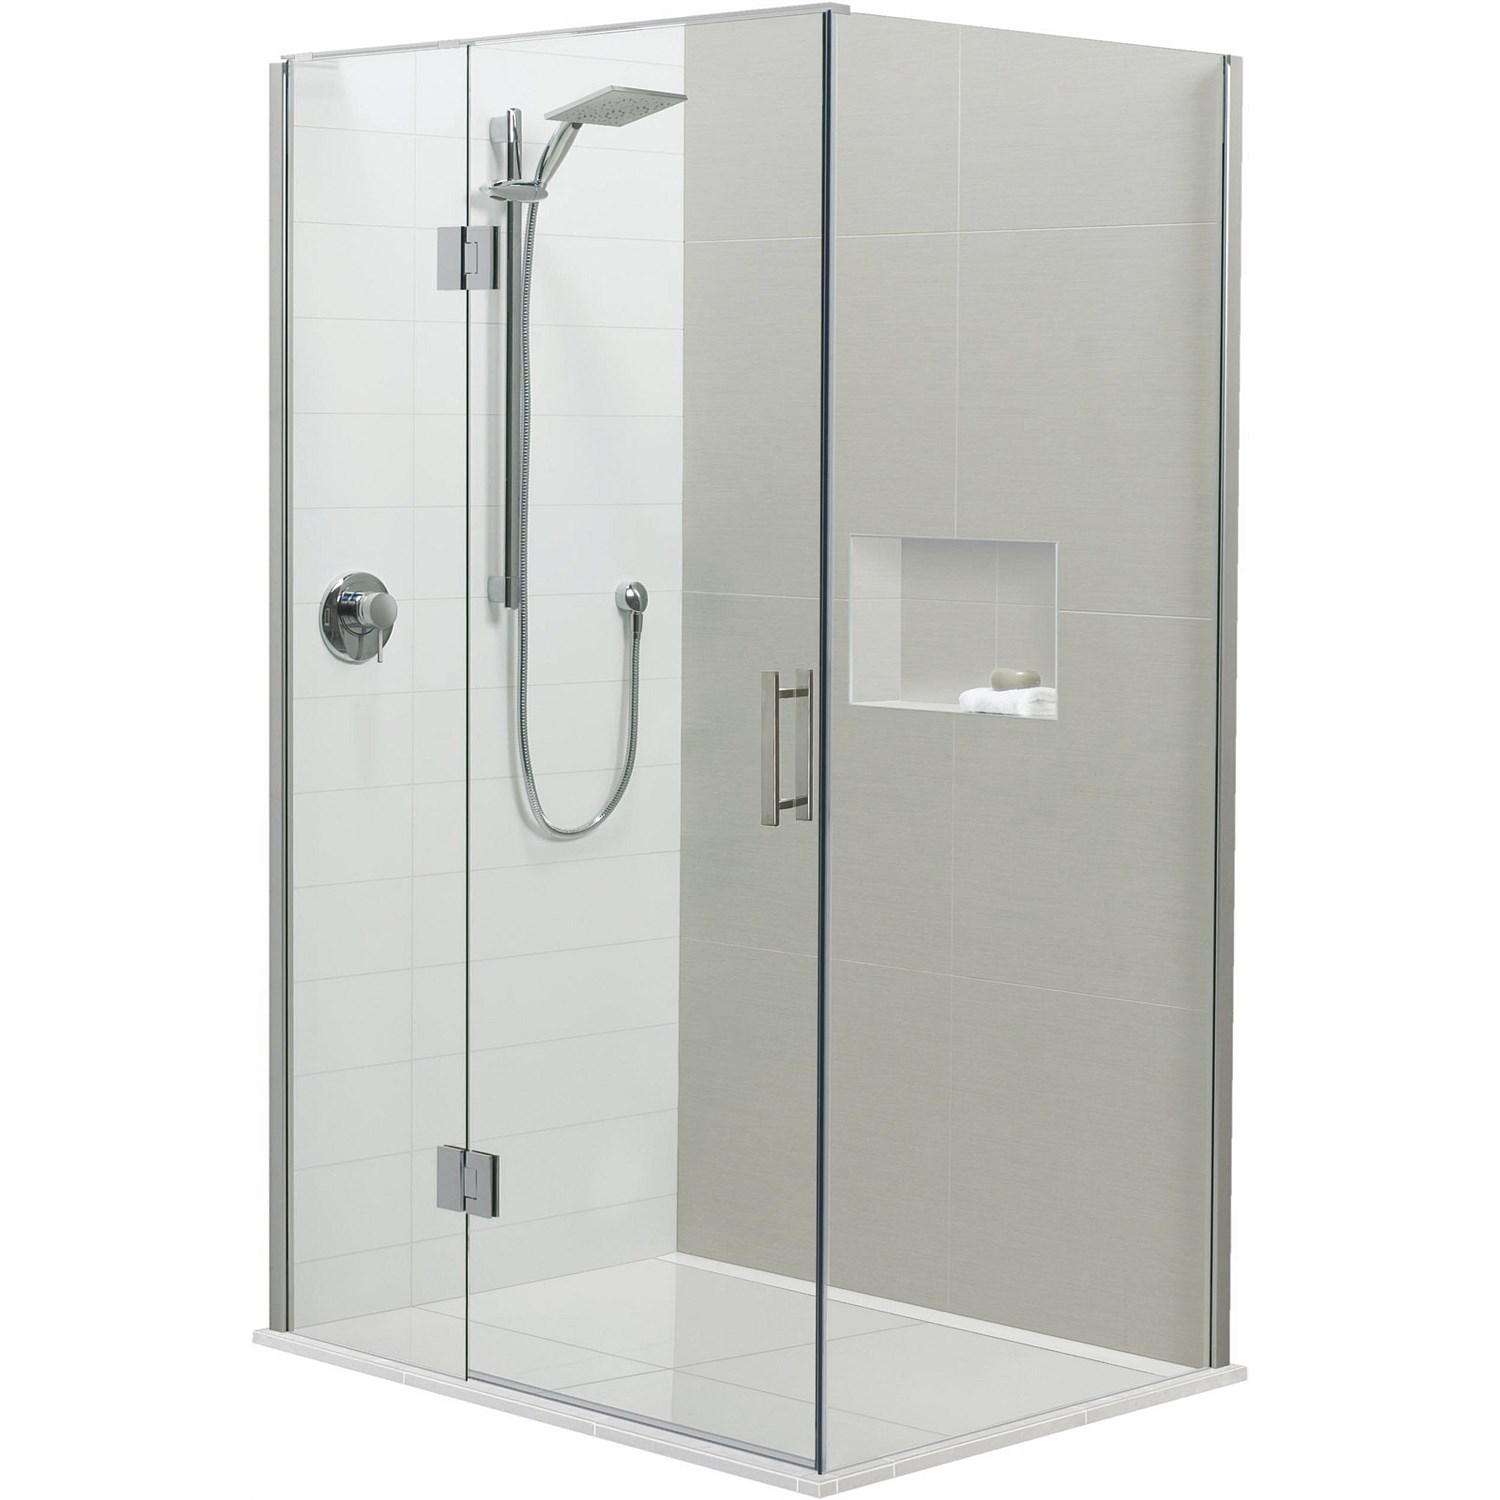 Showers Plumbing World Brenner 1200mm 2 Wall